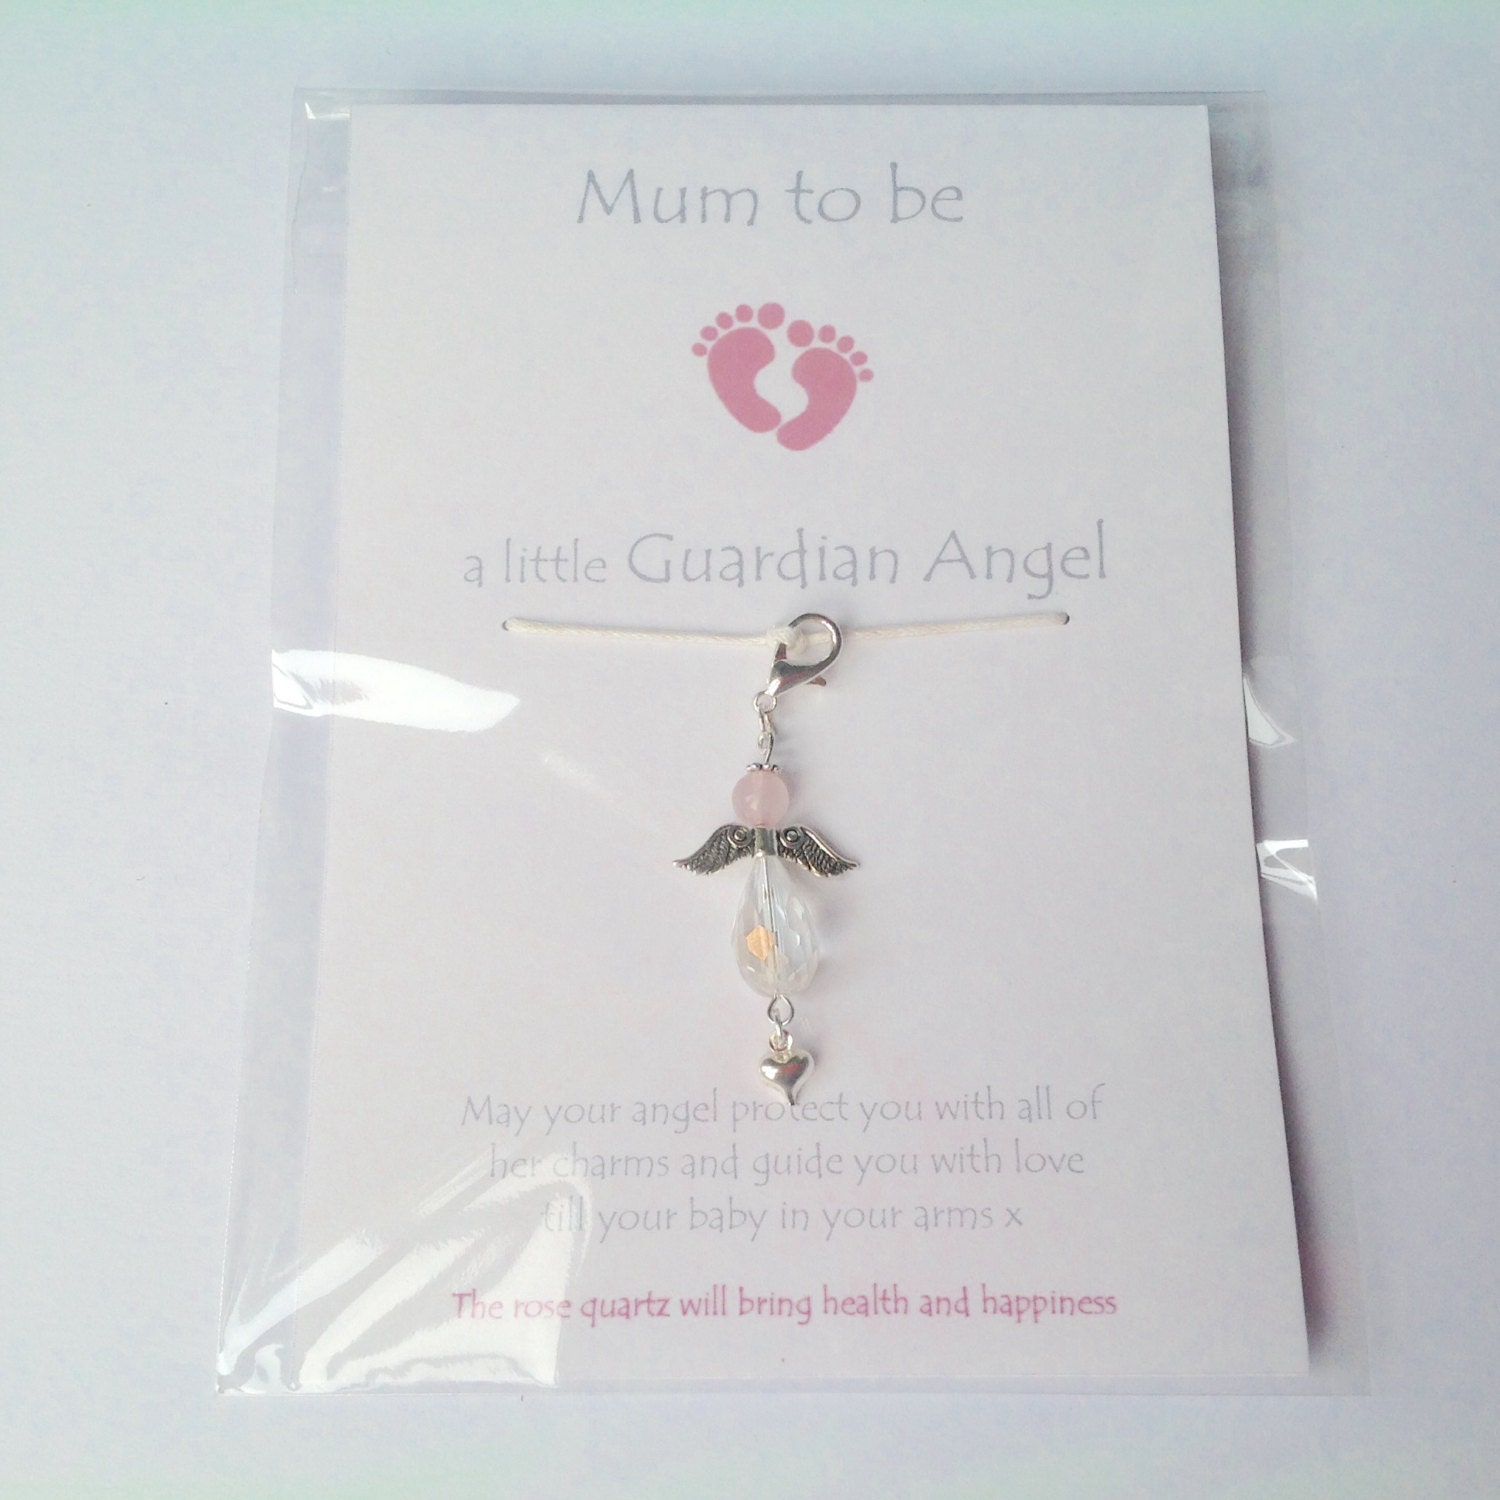 Baby Shower Wristbands Party Favours Accessories ~ mum to be gifts